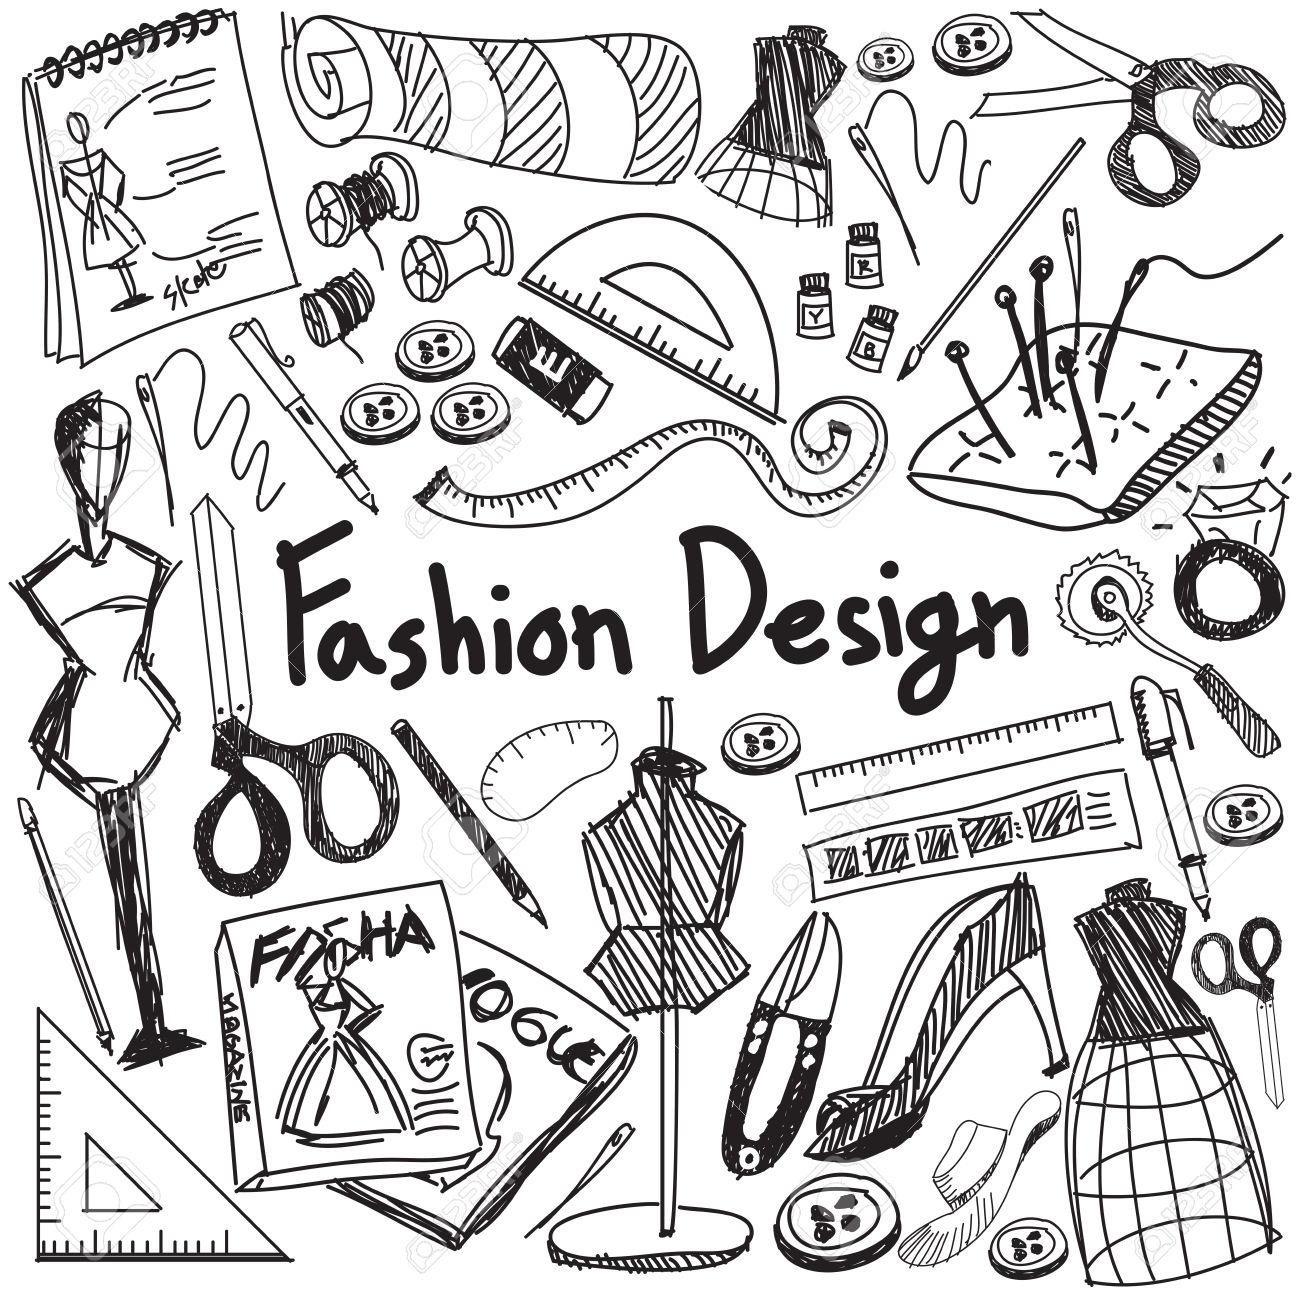 Fashion Design Education Handwriting Doodle Icon Tool Sign And Royalty Free Cliparts Vectors And Stock Illustration Image 52658899